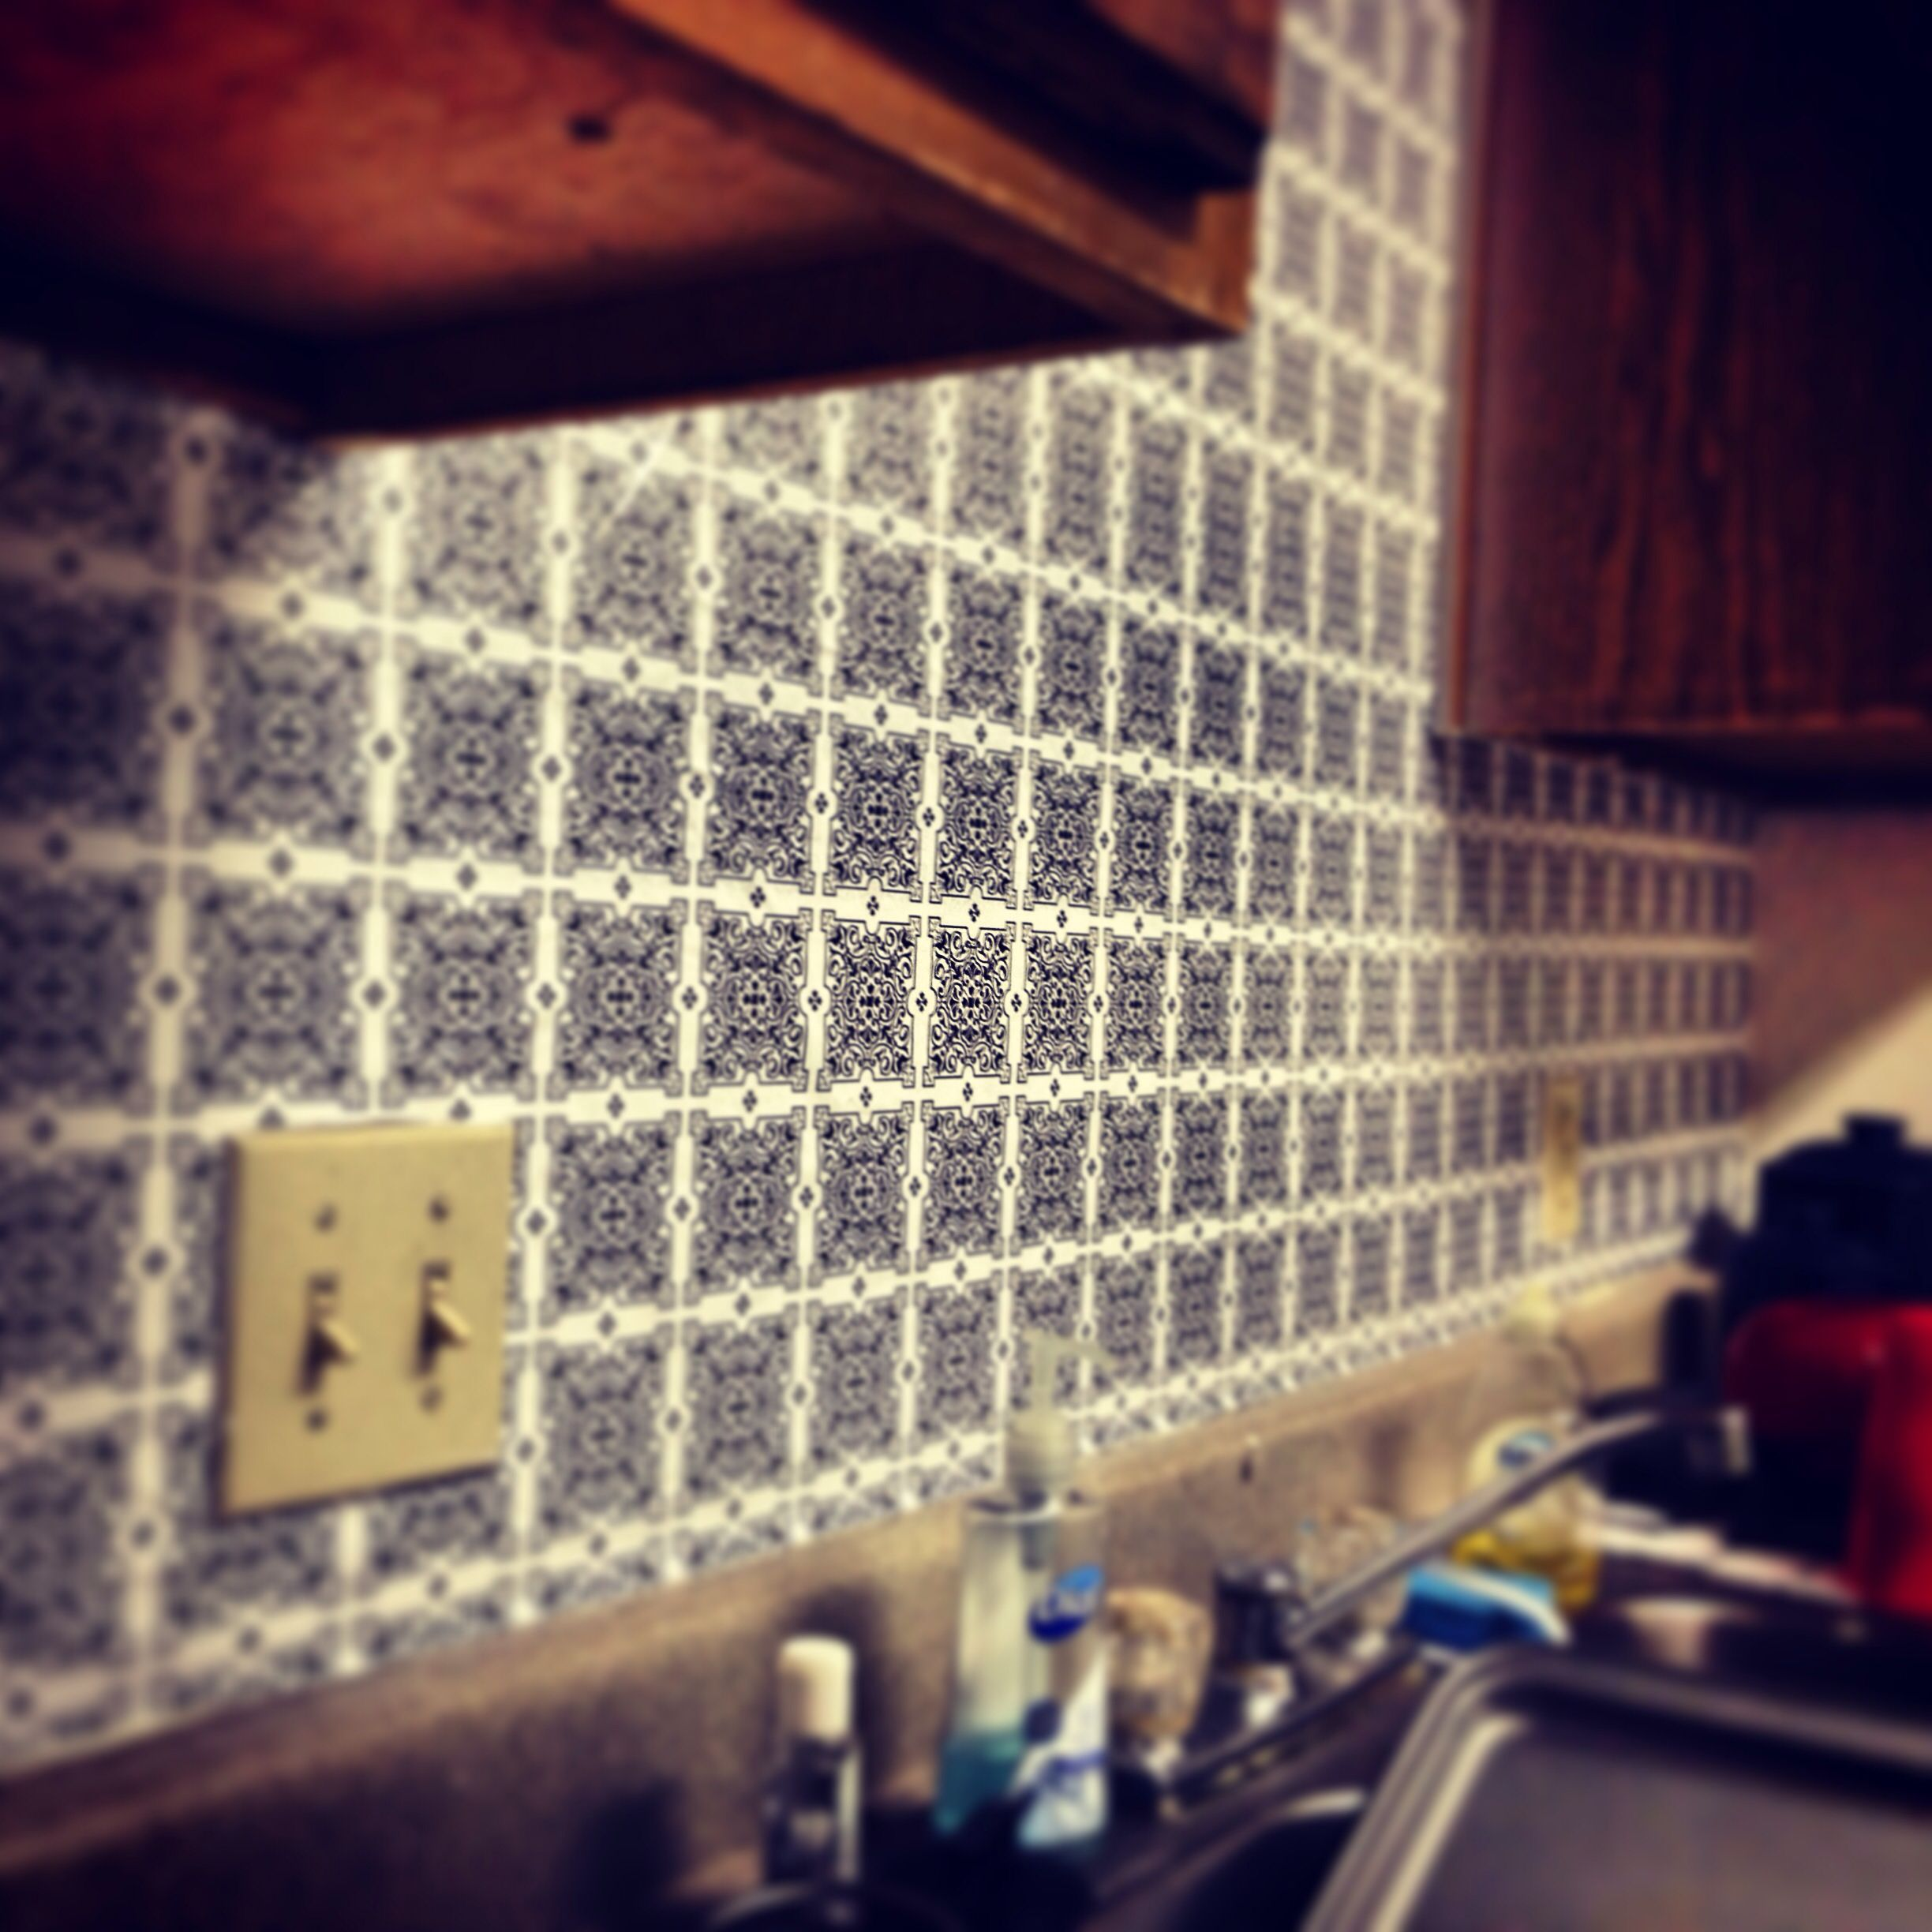 Kitchen Backsplash Easy Cheap using contact paper as a backsplash or wallpaper. easy, super